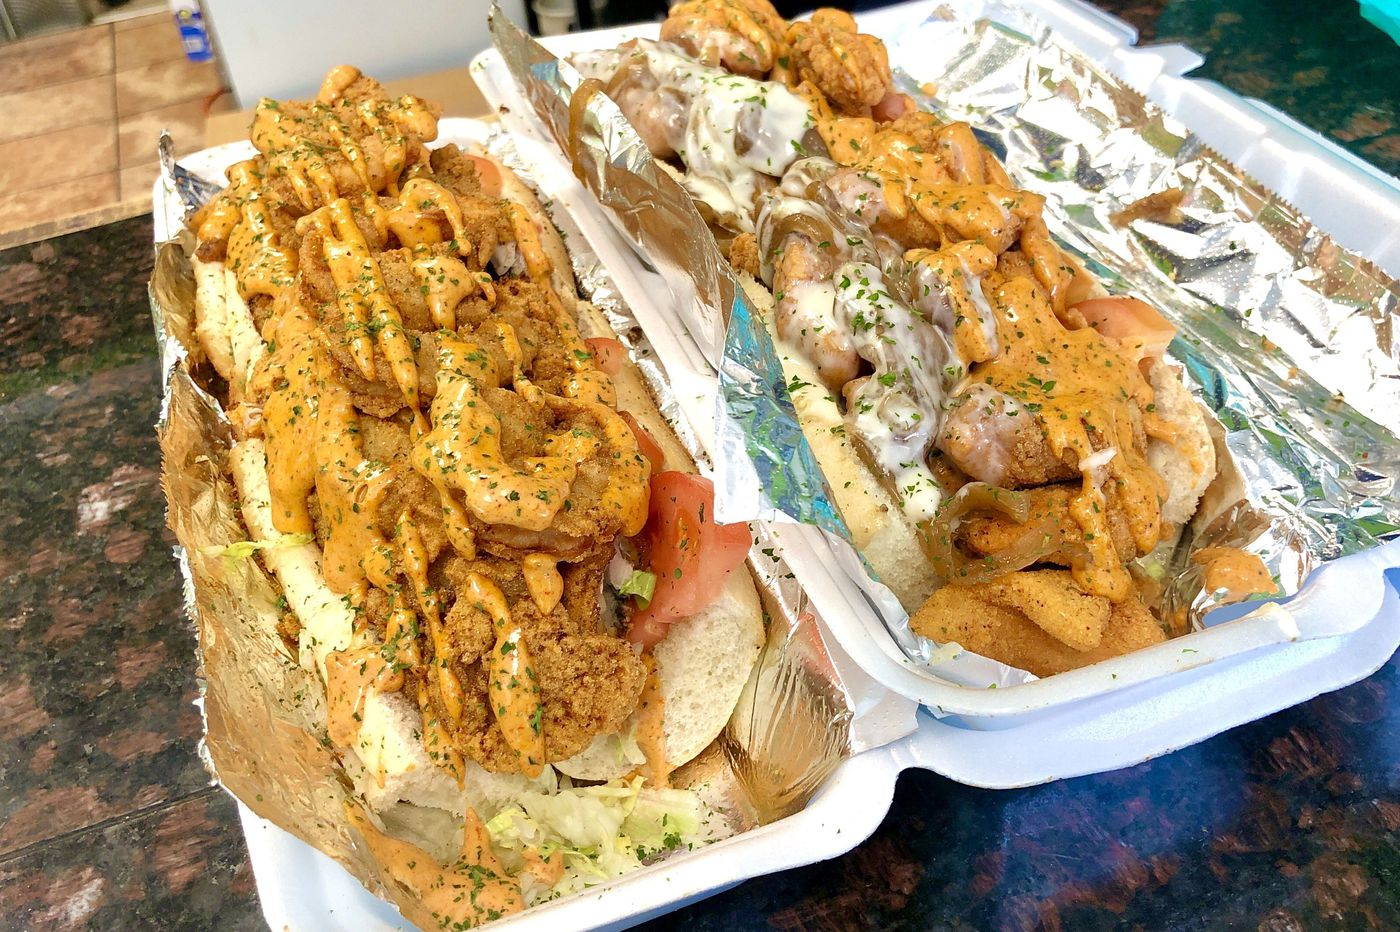 At this East Mount Airy bakery, seafood po'boys come on garlic bread